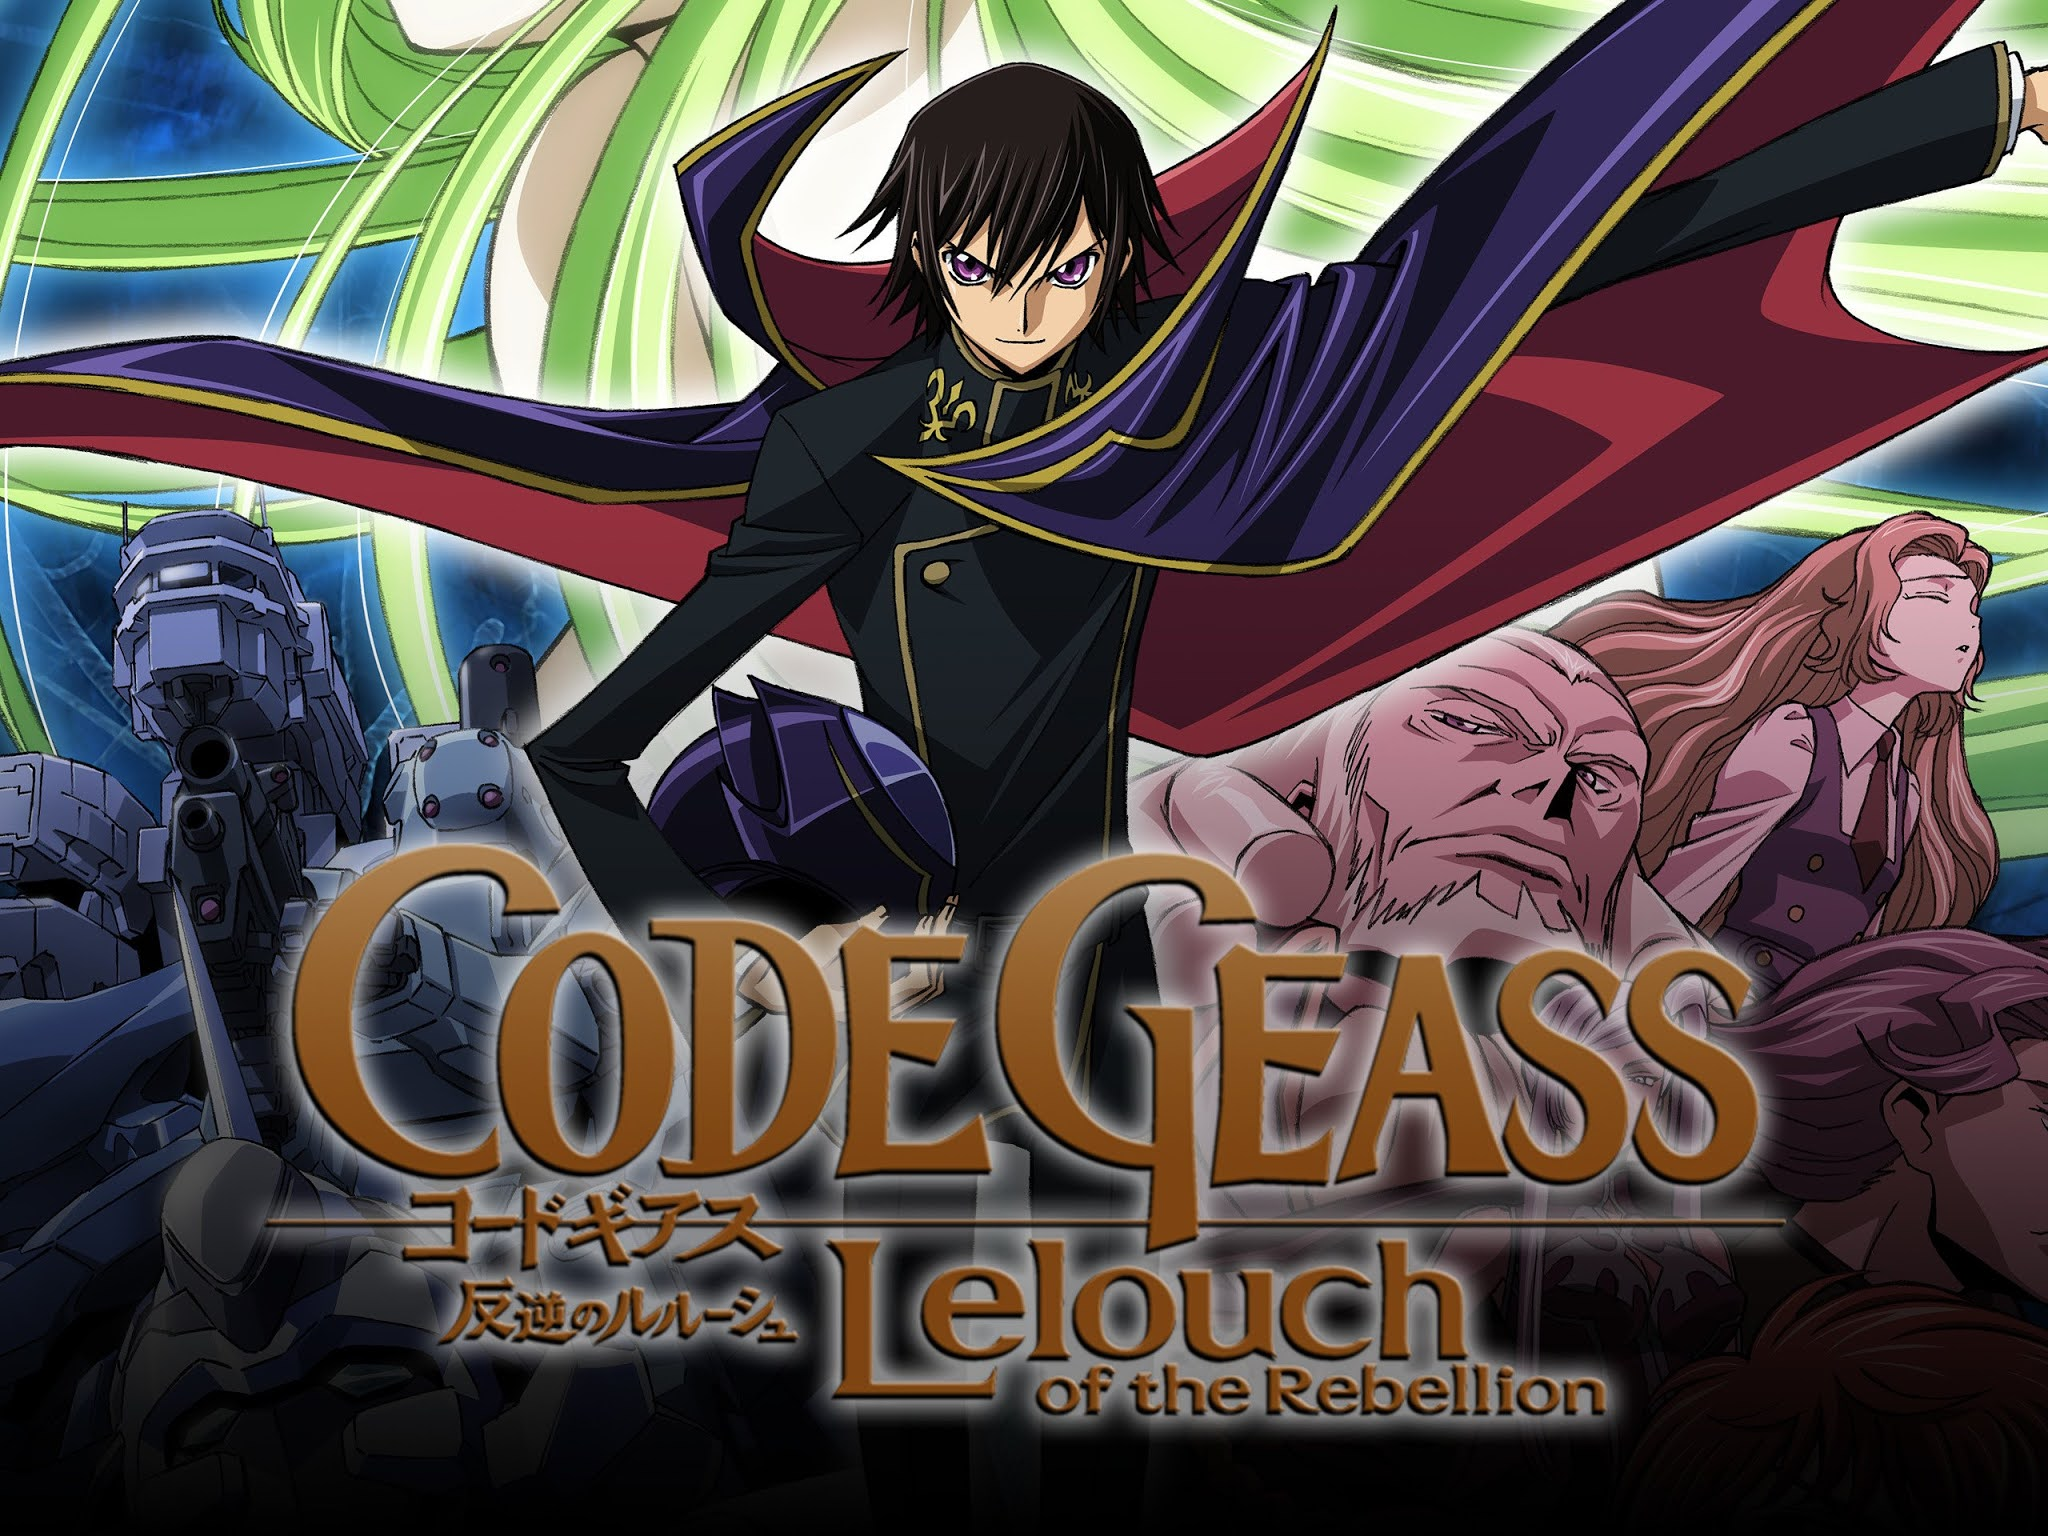 New Code Geass project to be announced soon